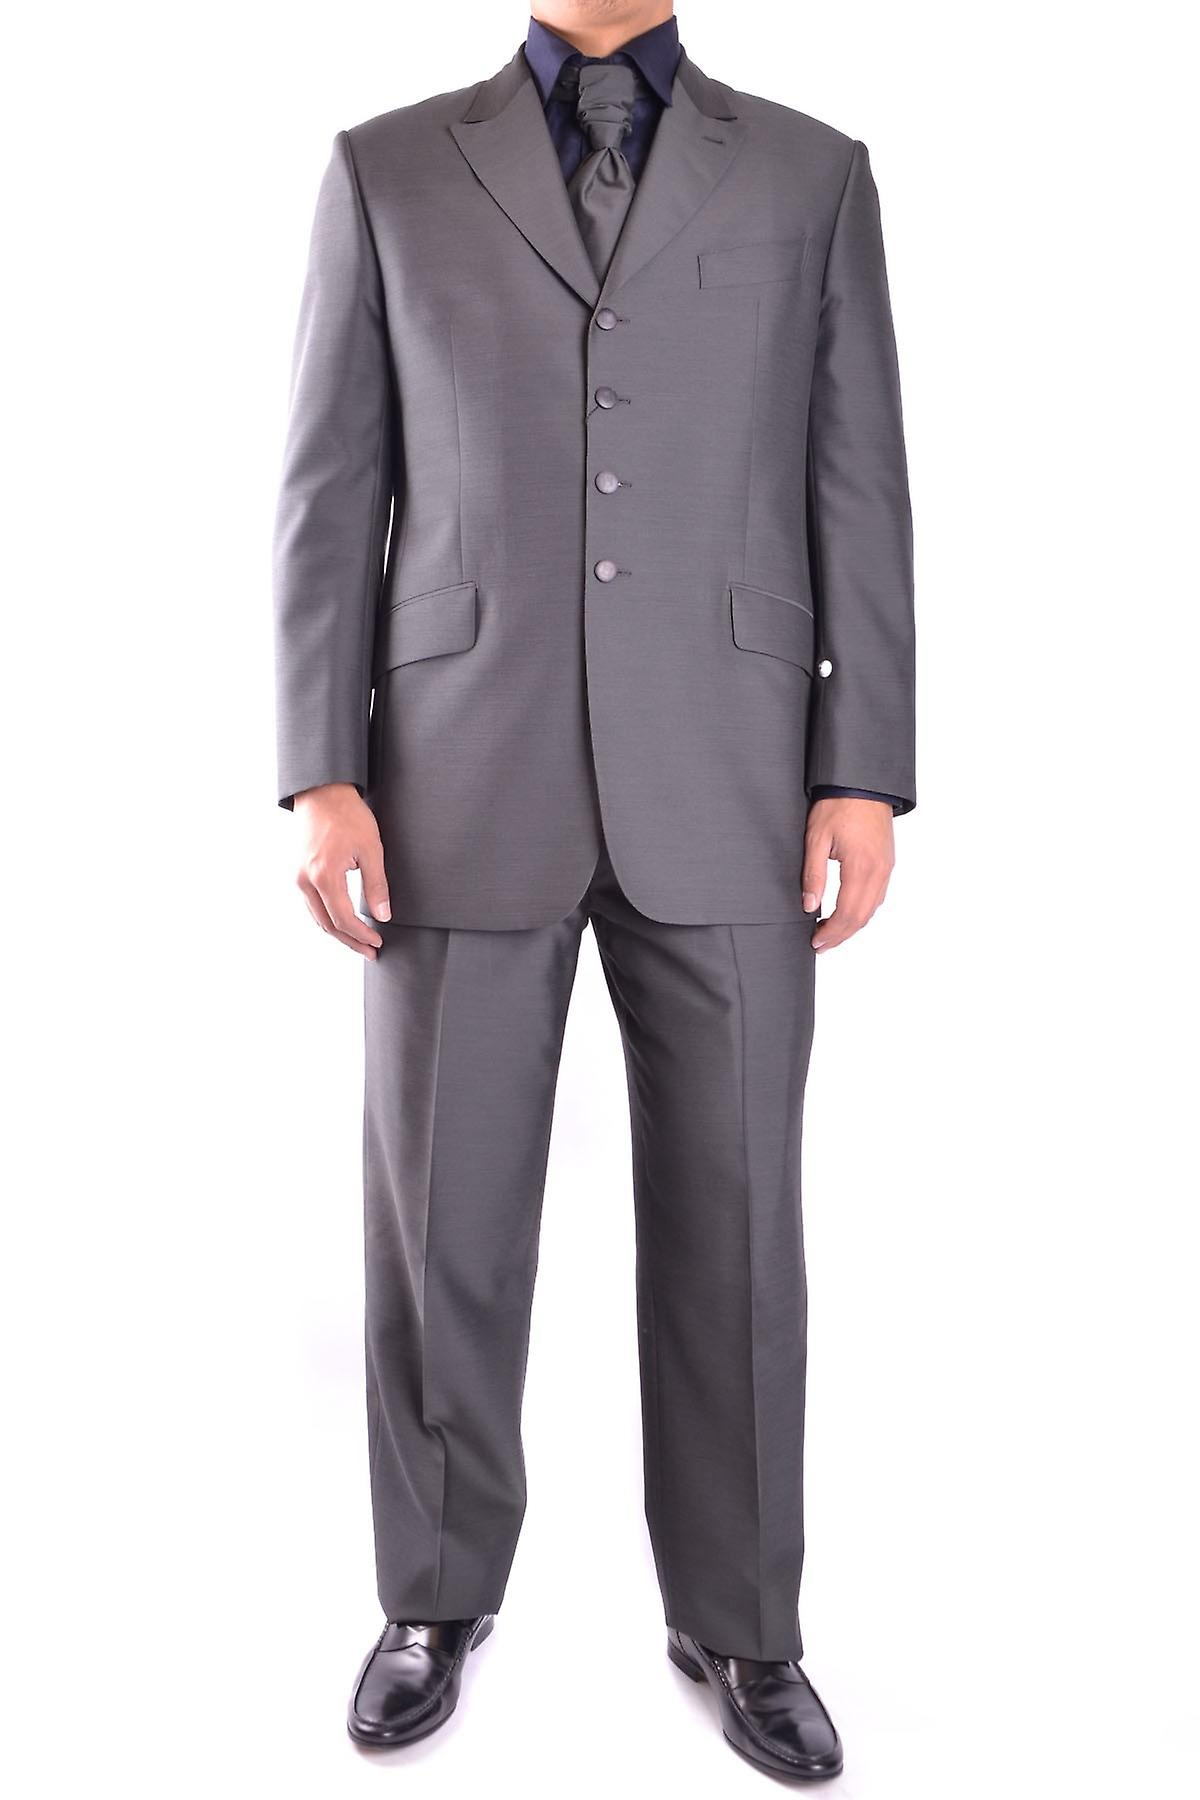 Carlo Pignatelli men's MCBI065003O grey wool suit